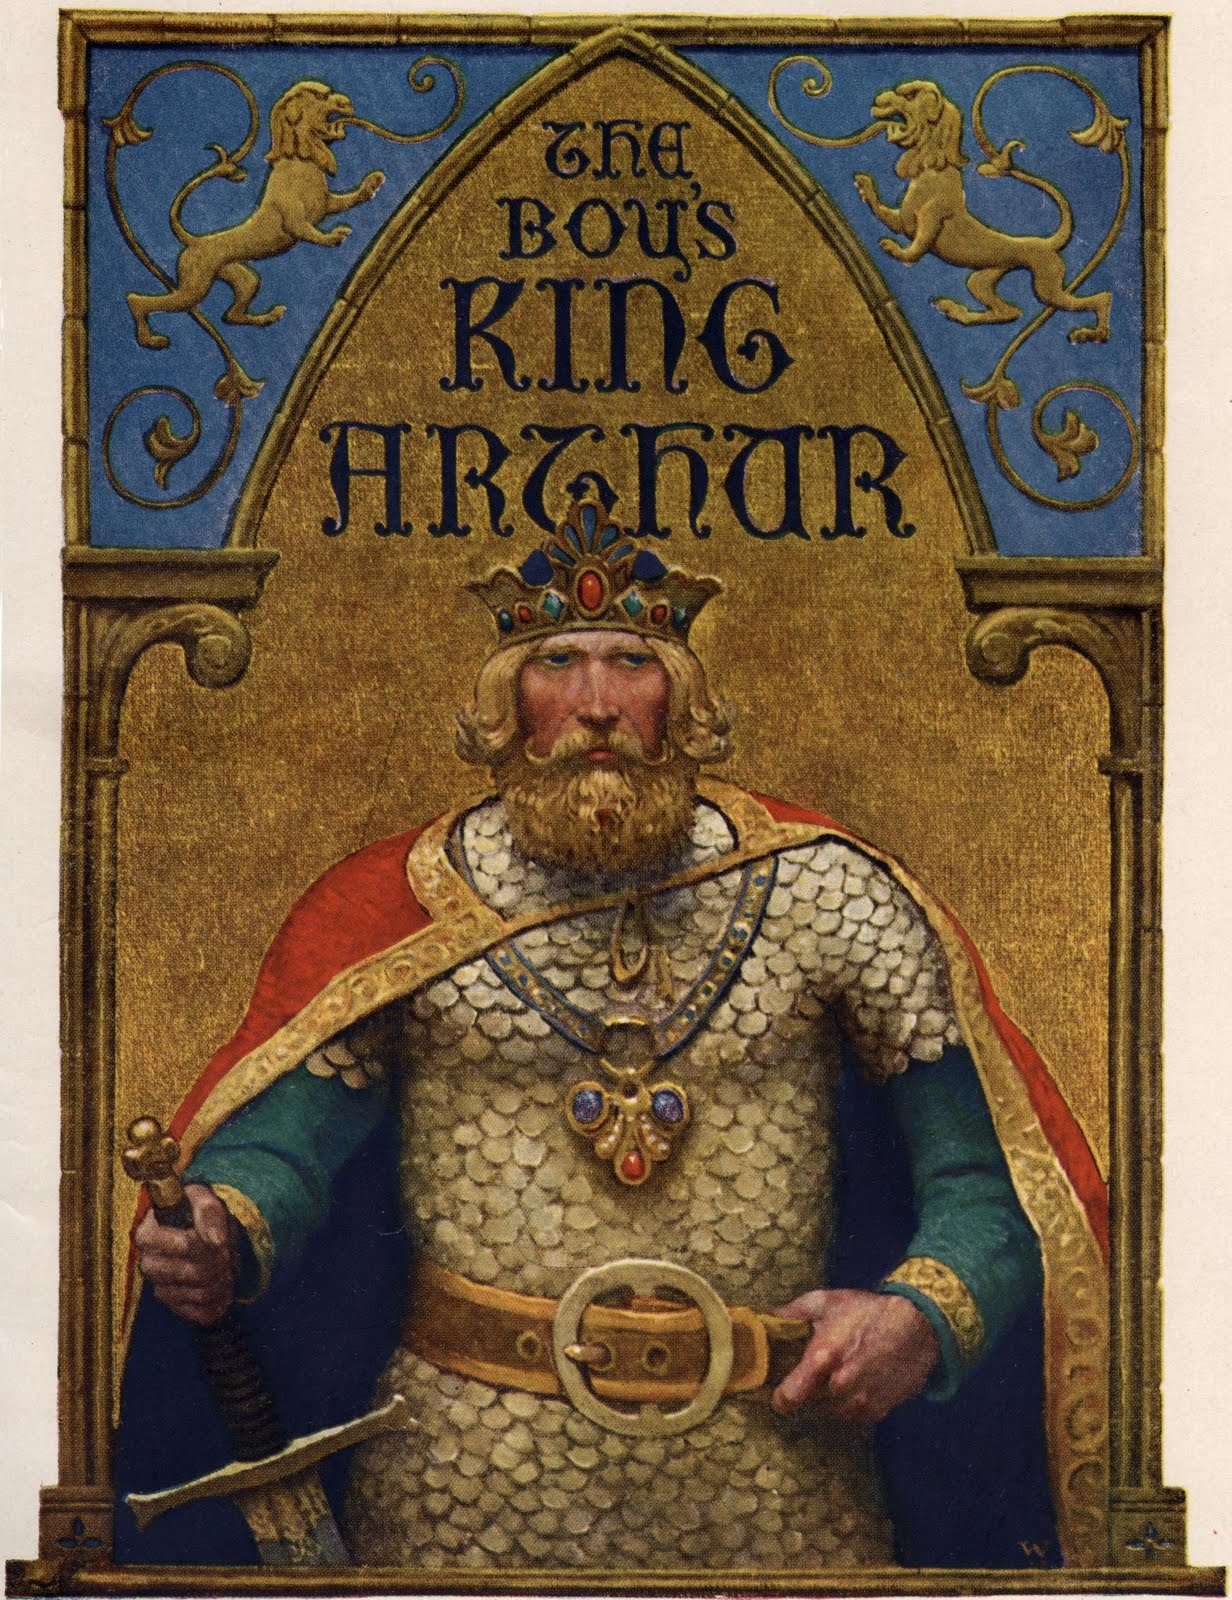 character sketch on king arthur sir gawin A special constitution that sir gawain possesses his power becomes three times greater only in the three hours between 9 am and noon, 3 pm and sunset it indicates 3 as the sacred number of the celts.